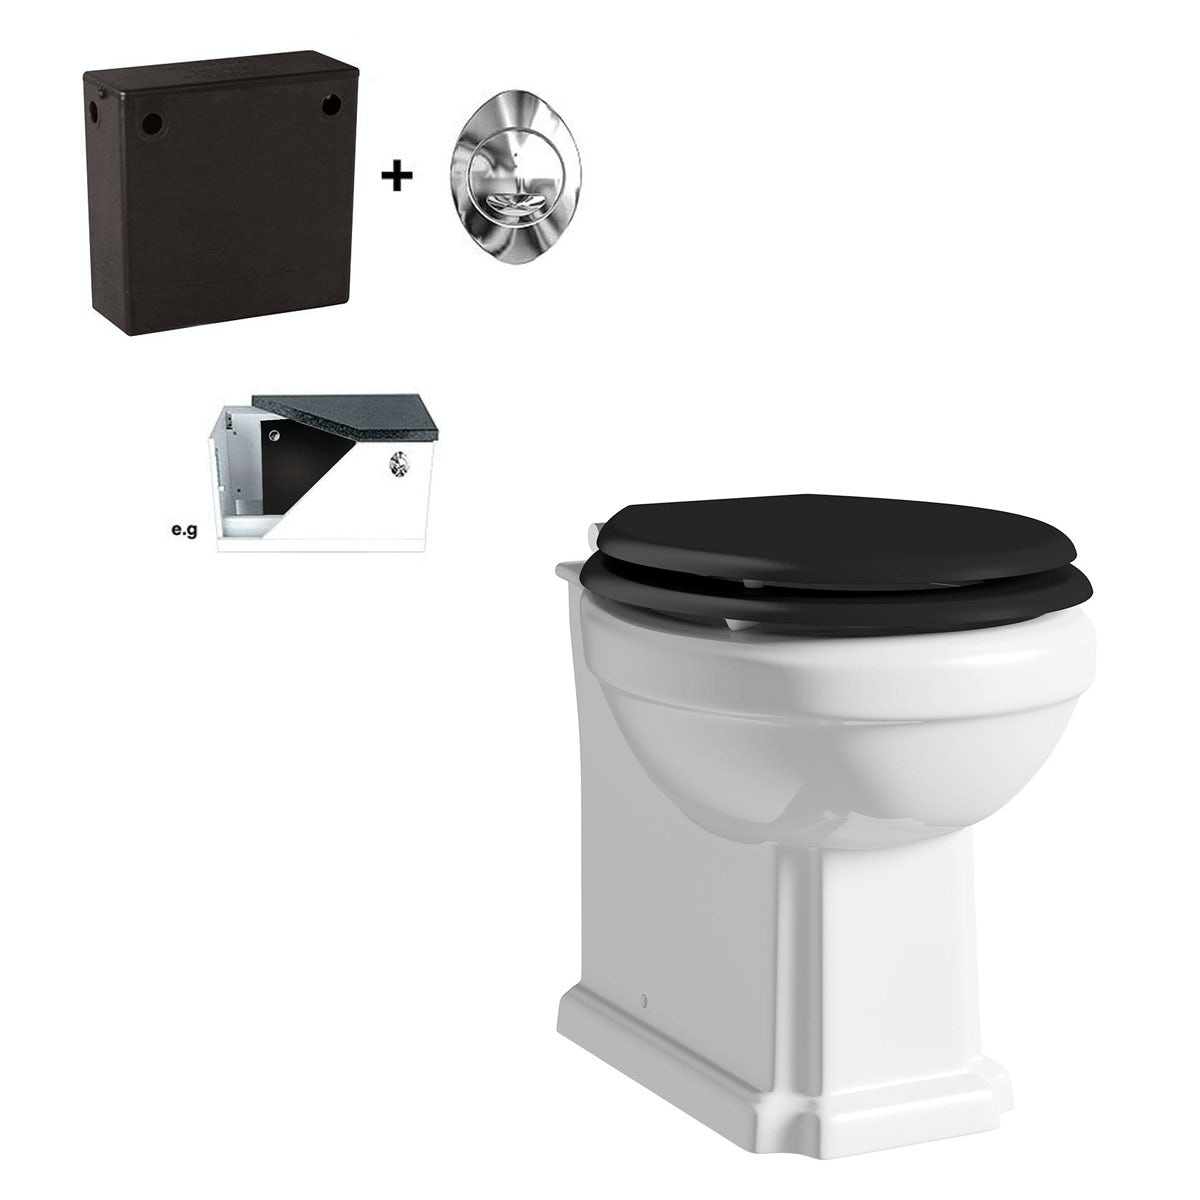 white toilet with black seat. Camberley back to wall toilet with black soft close seat and concealed The Bath Co